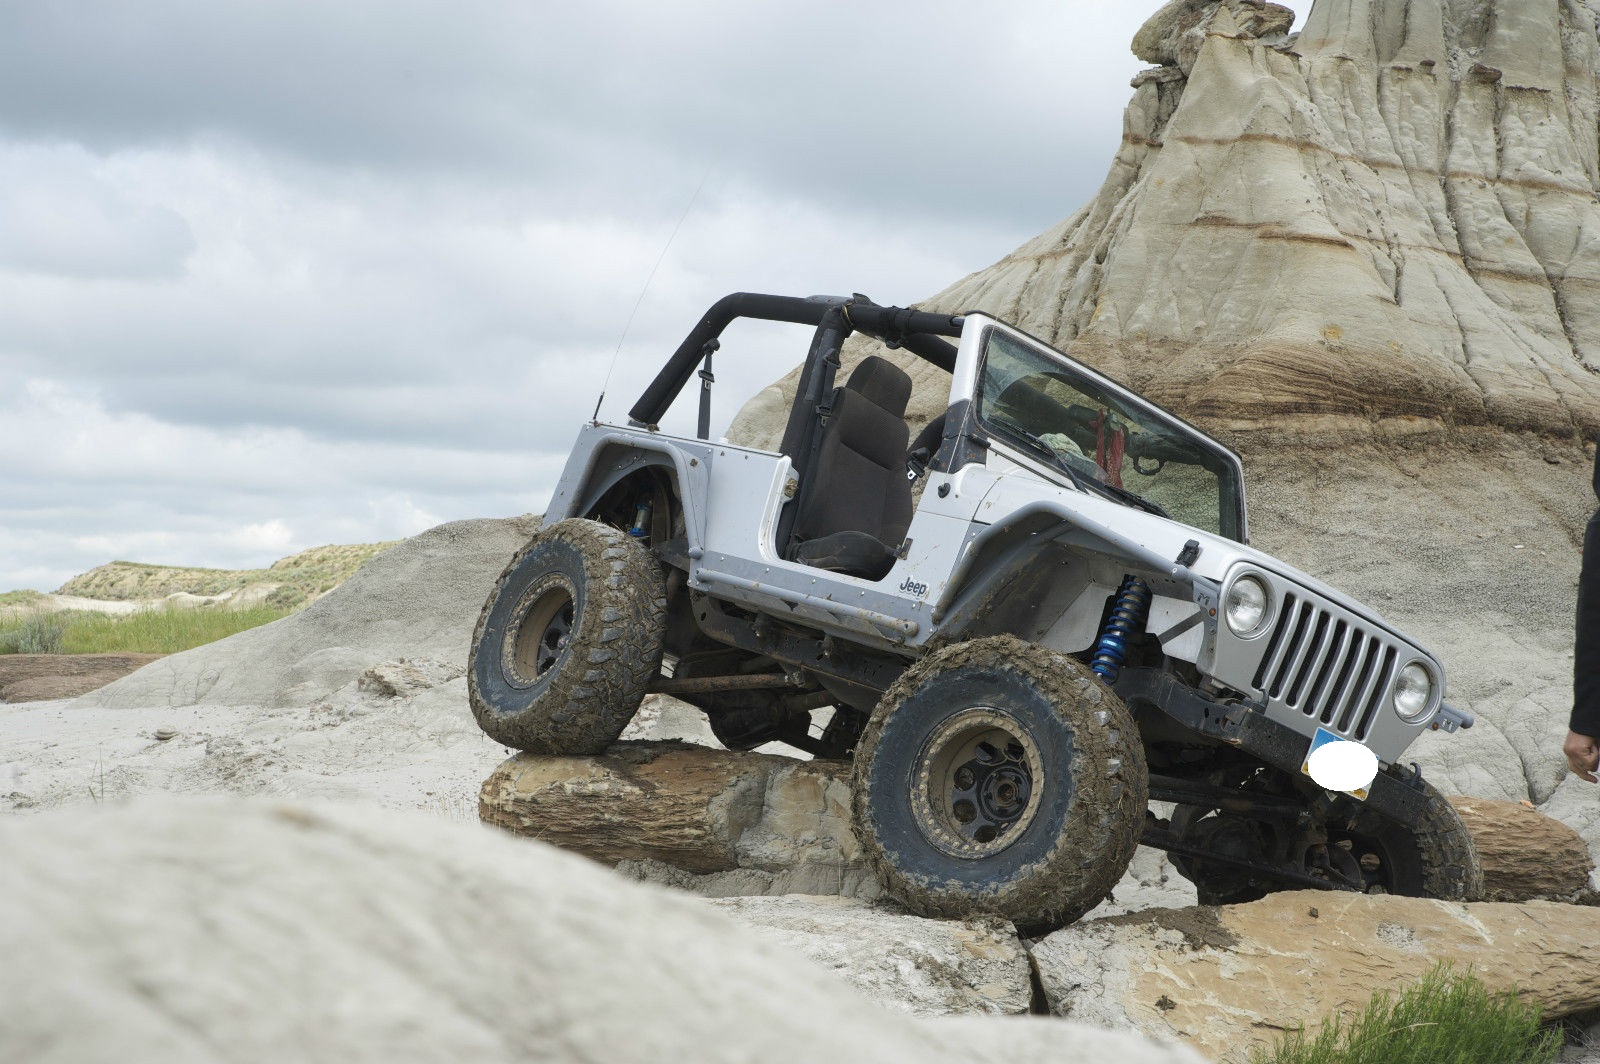 SoCal: 2005 Jeep Wranger Unlimited LJ Rubicon 37